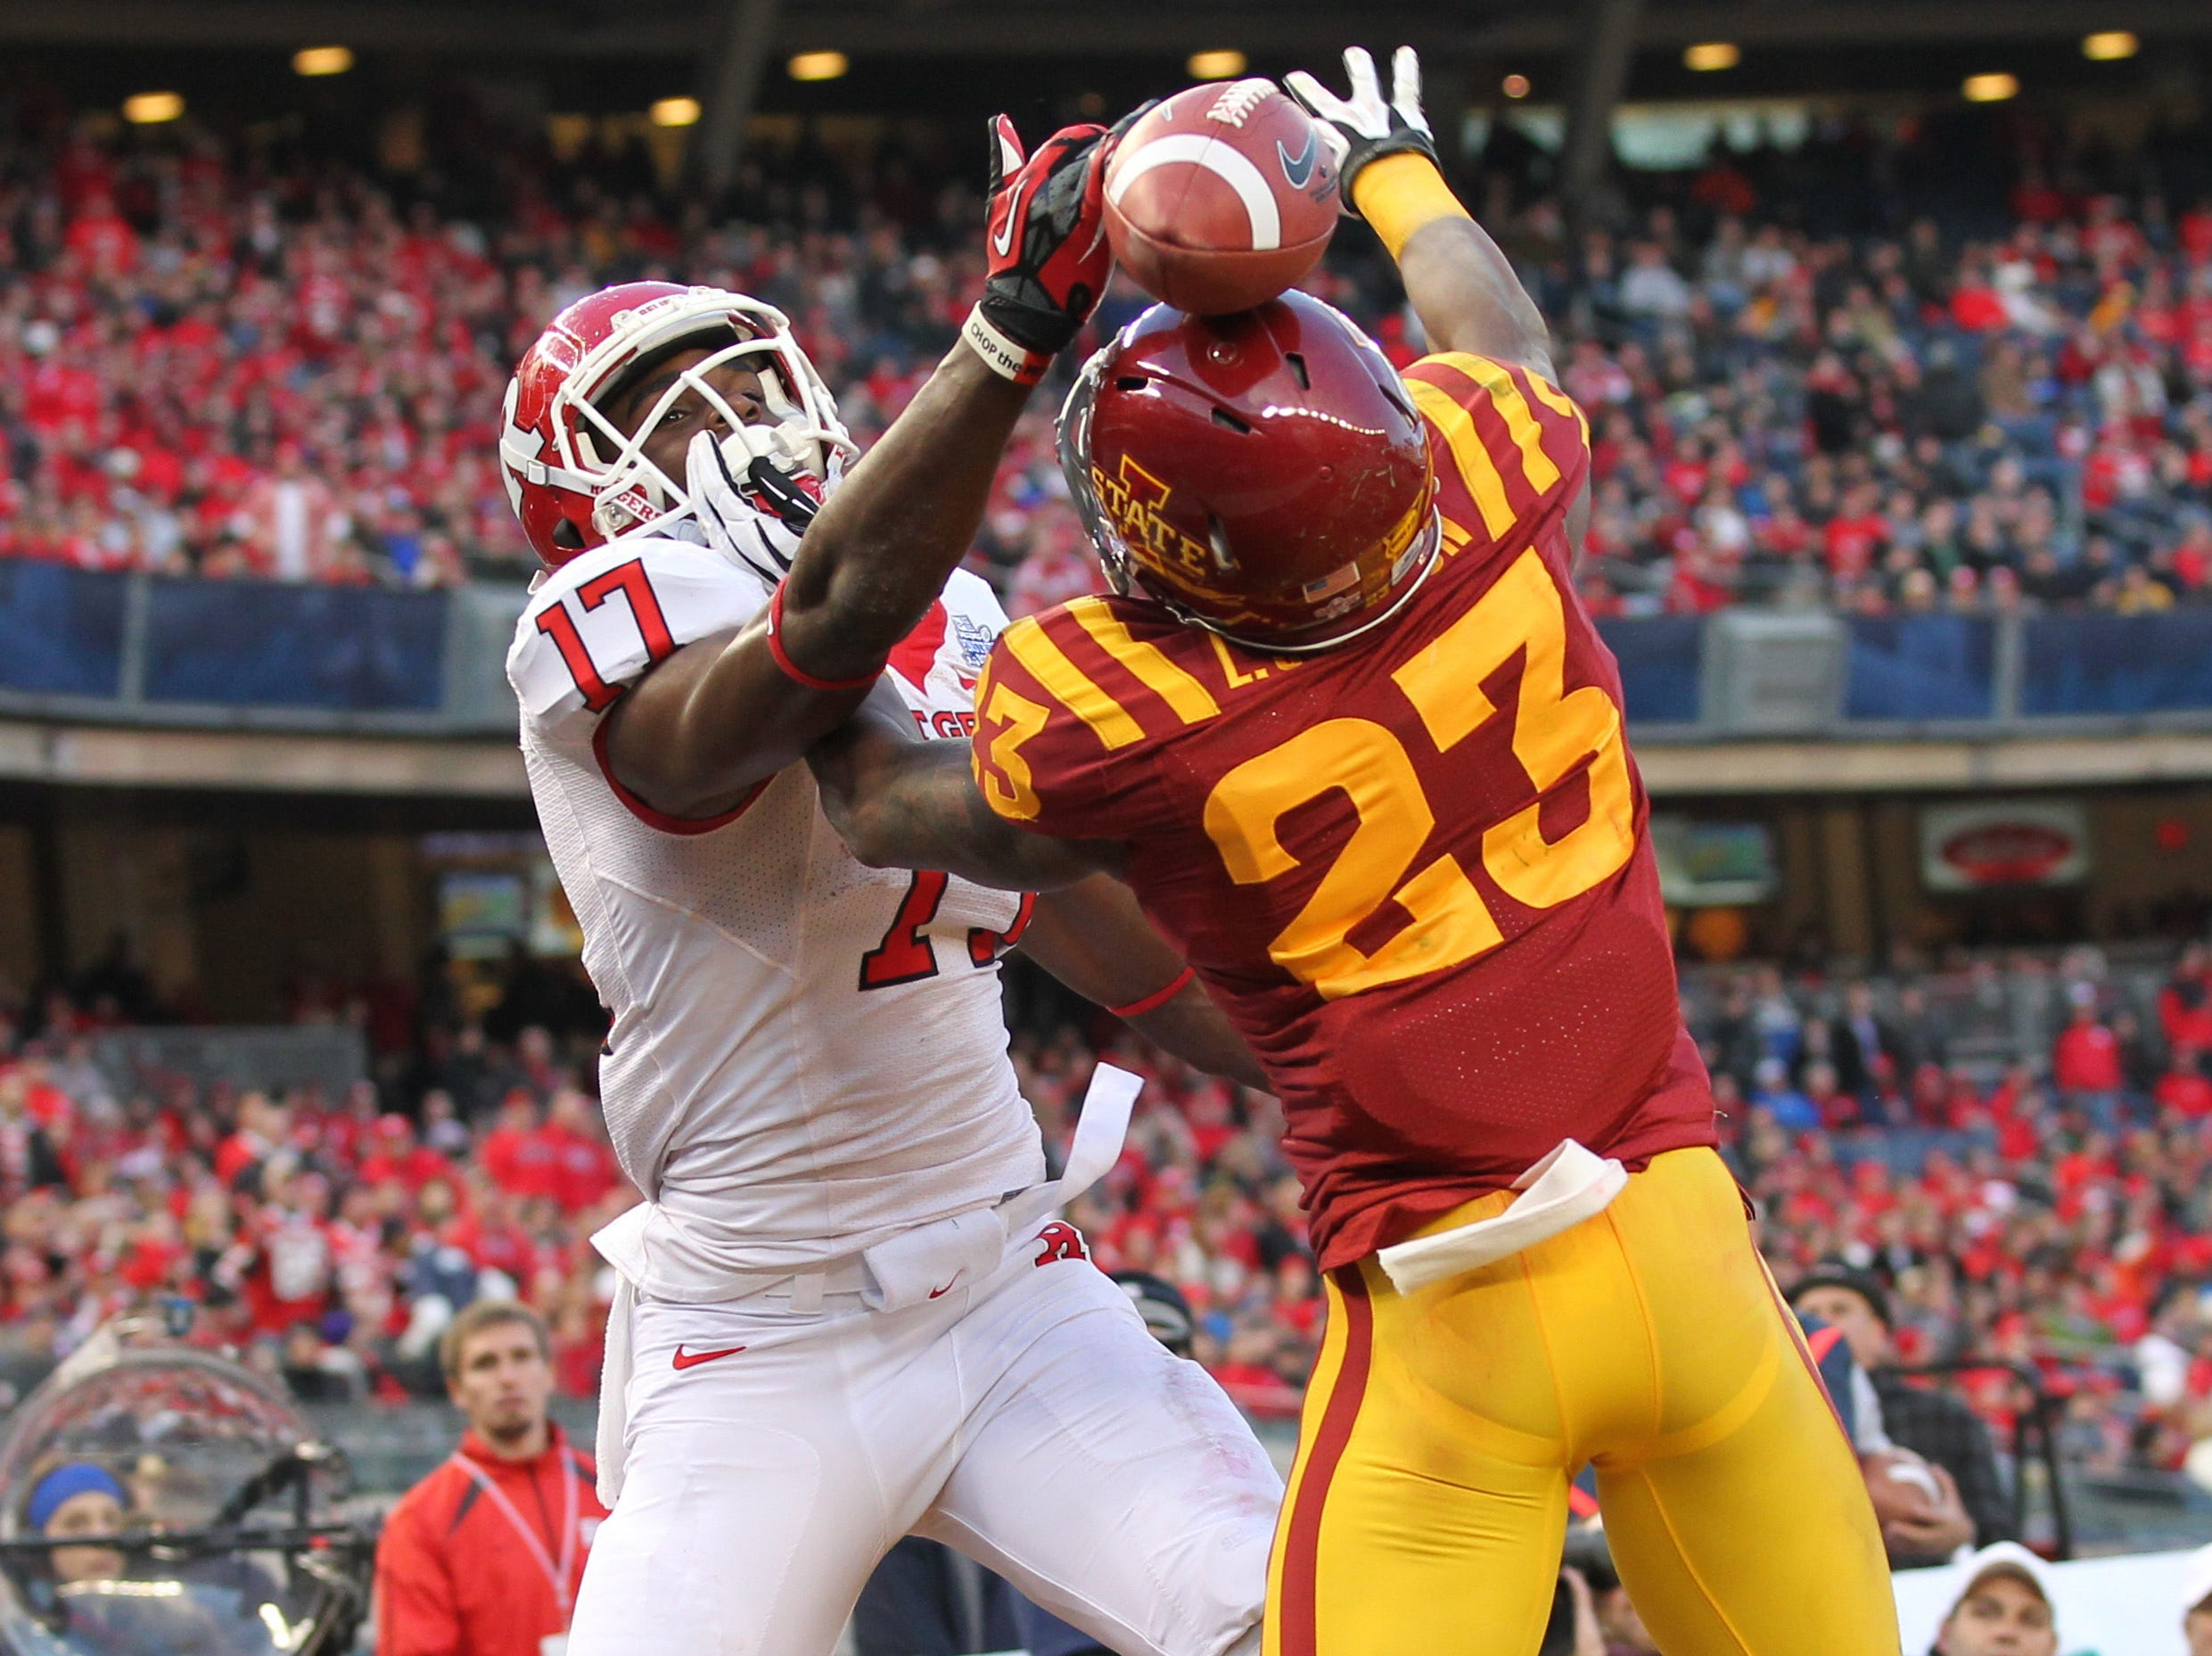 Rutgers Scarlet Knights wide receiver Brandon Coleman (17) misses a catch against Iowa State Cyclones defensive back Leonard Johnson (23) during the second quarter of the 2011 Pinstripe Bowl at Yankee Stadium.